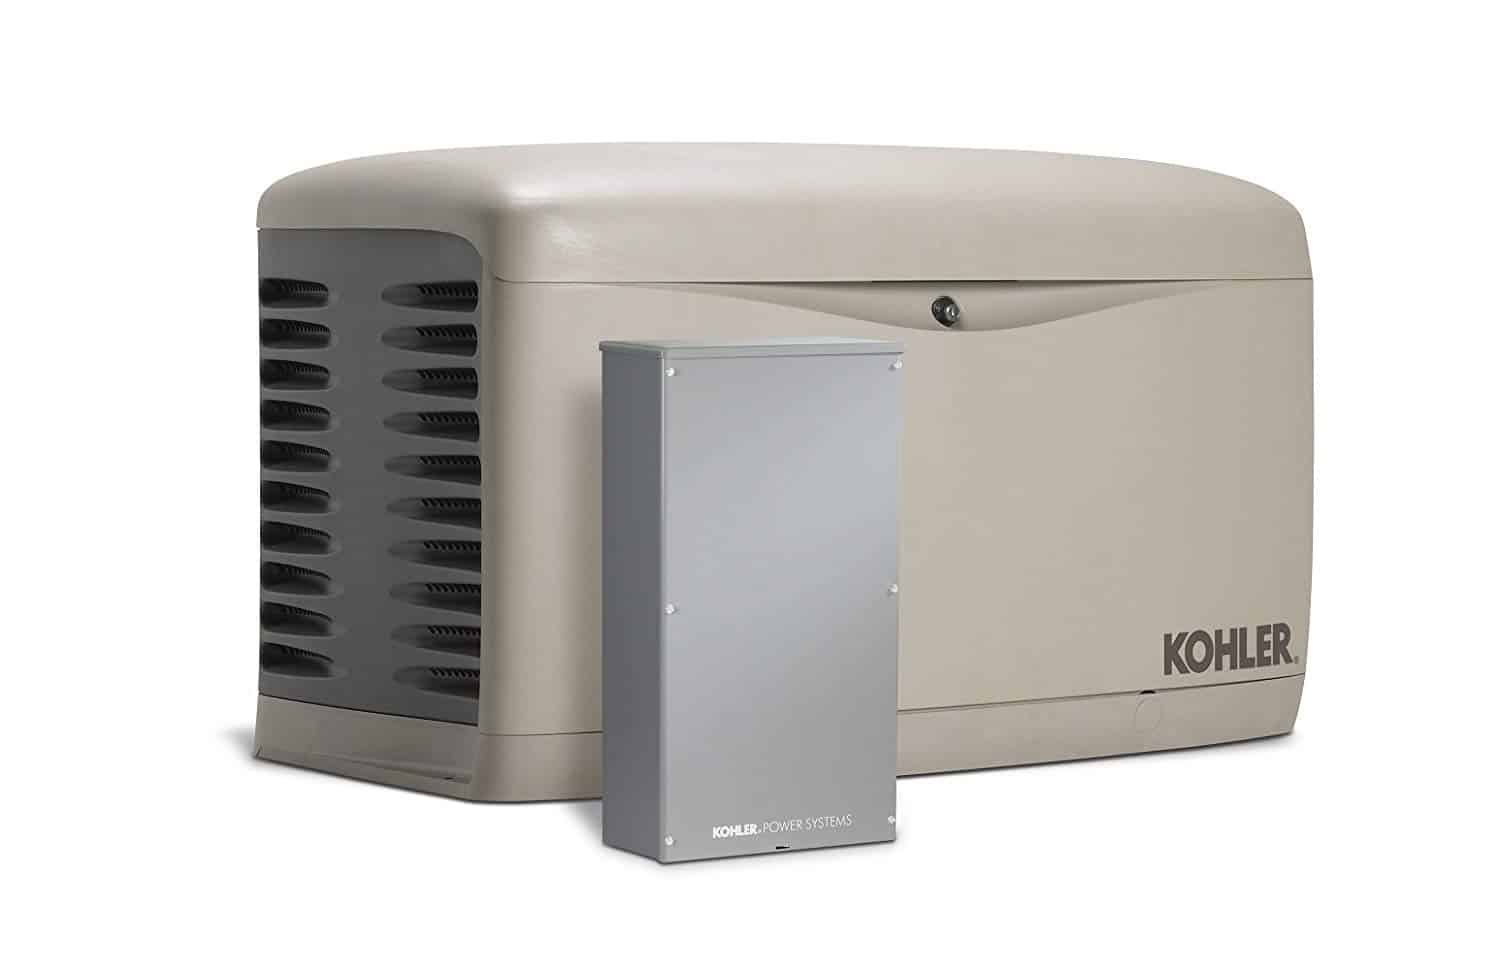 Kohler 20RESCL-200SELS Air-Cooled Standby Generator